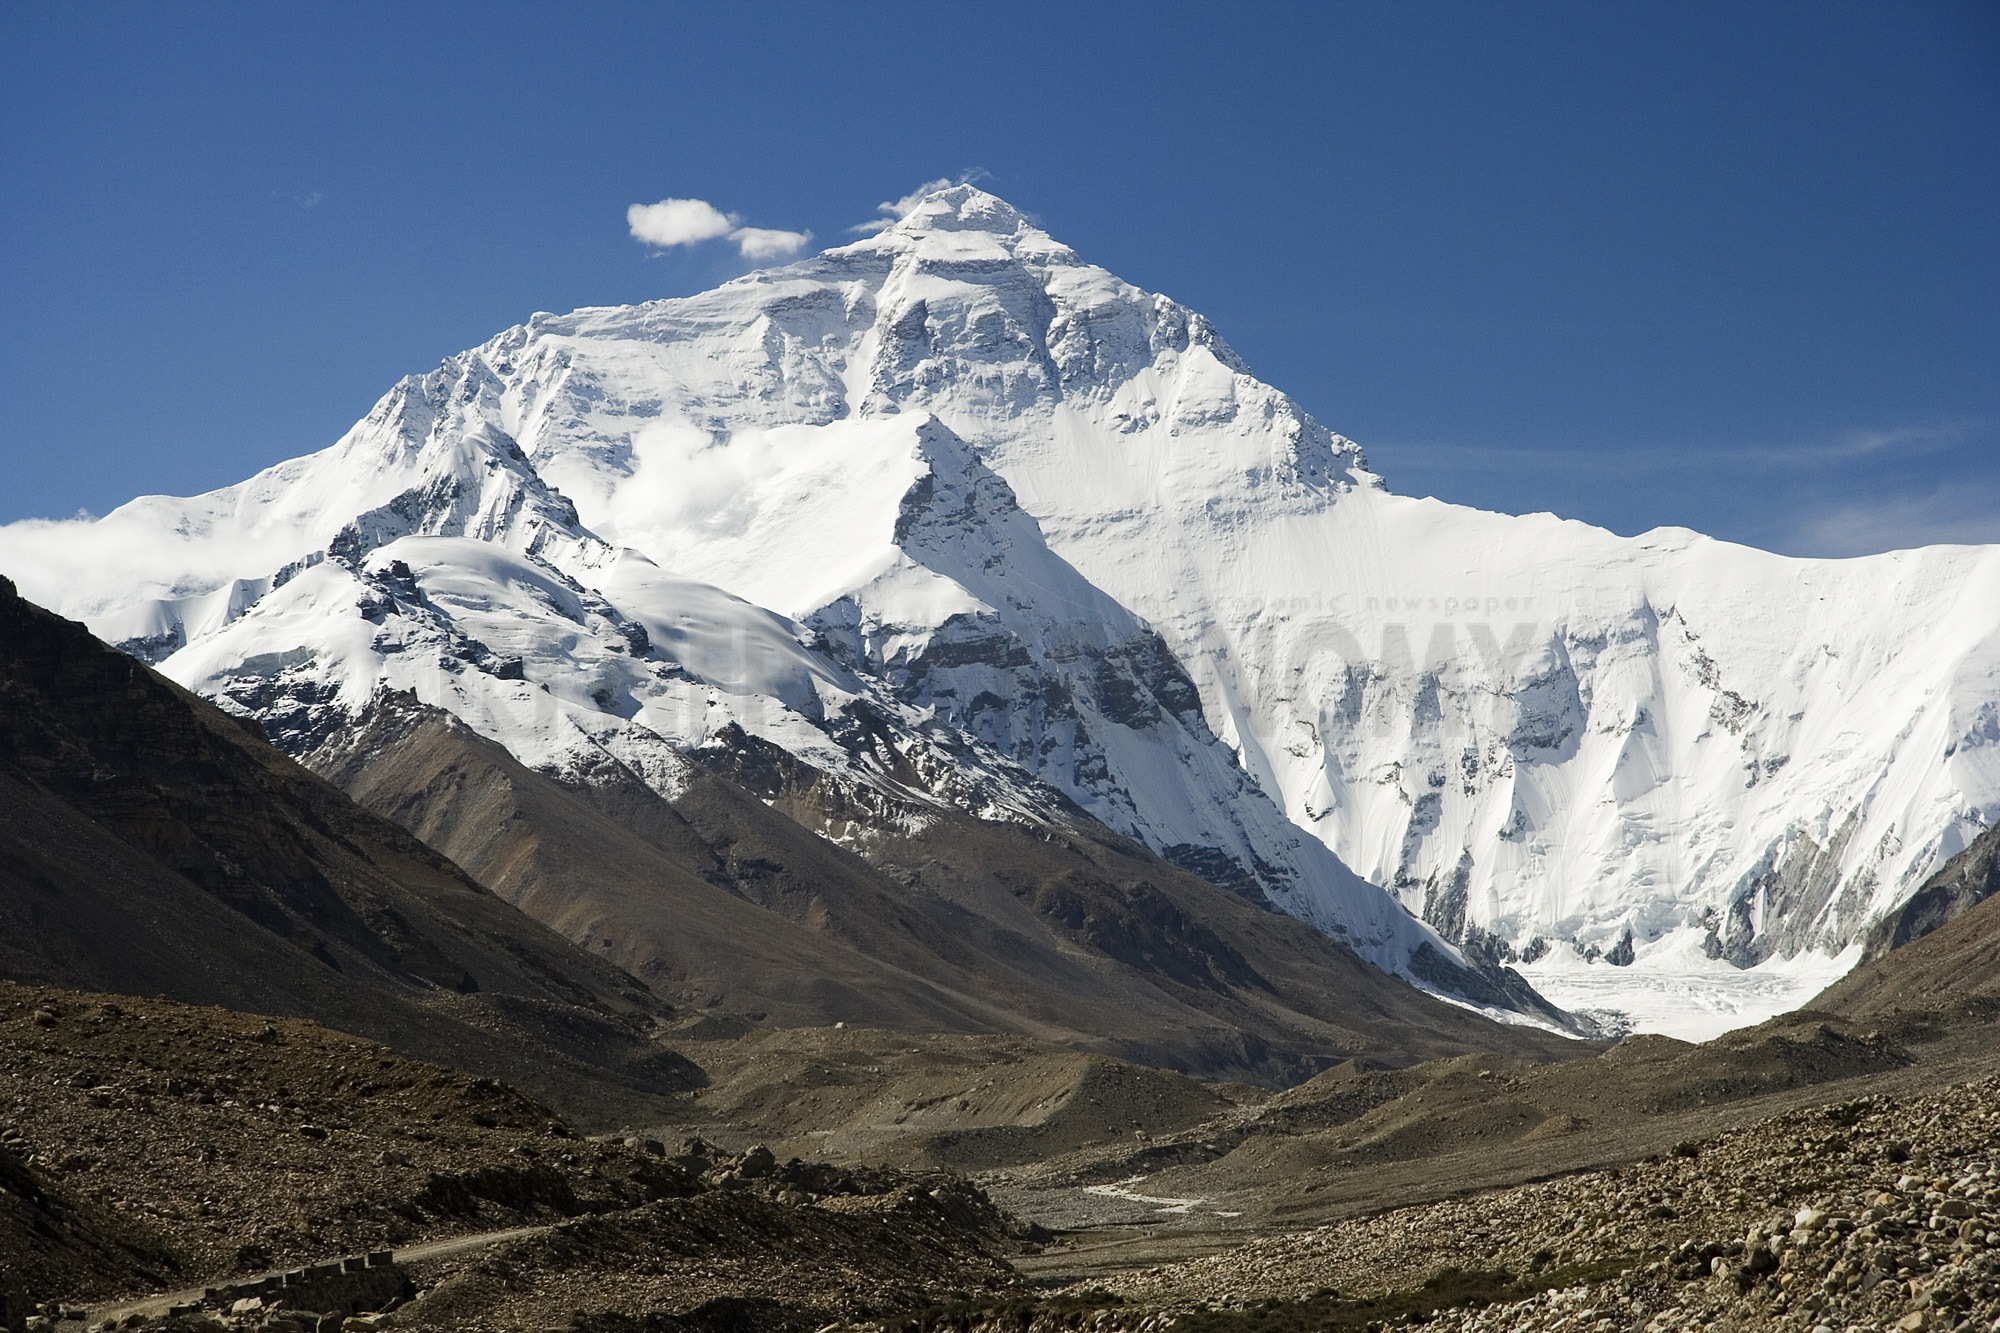 Mt Everest expeditions for this season uncertain